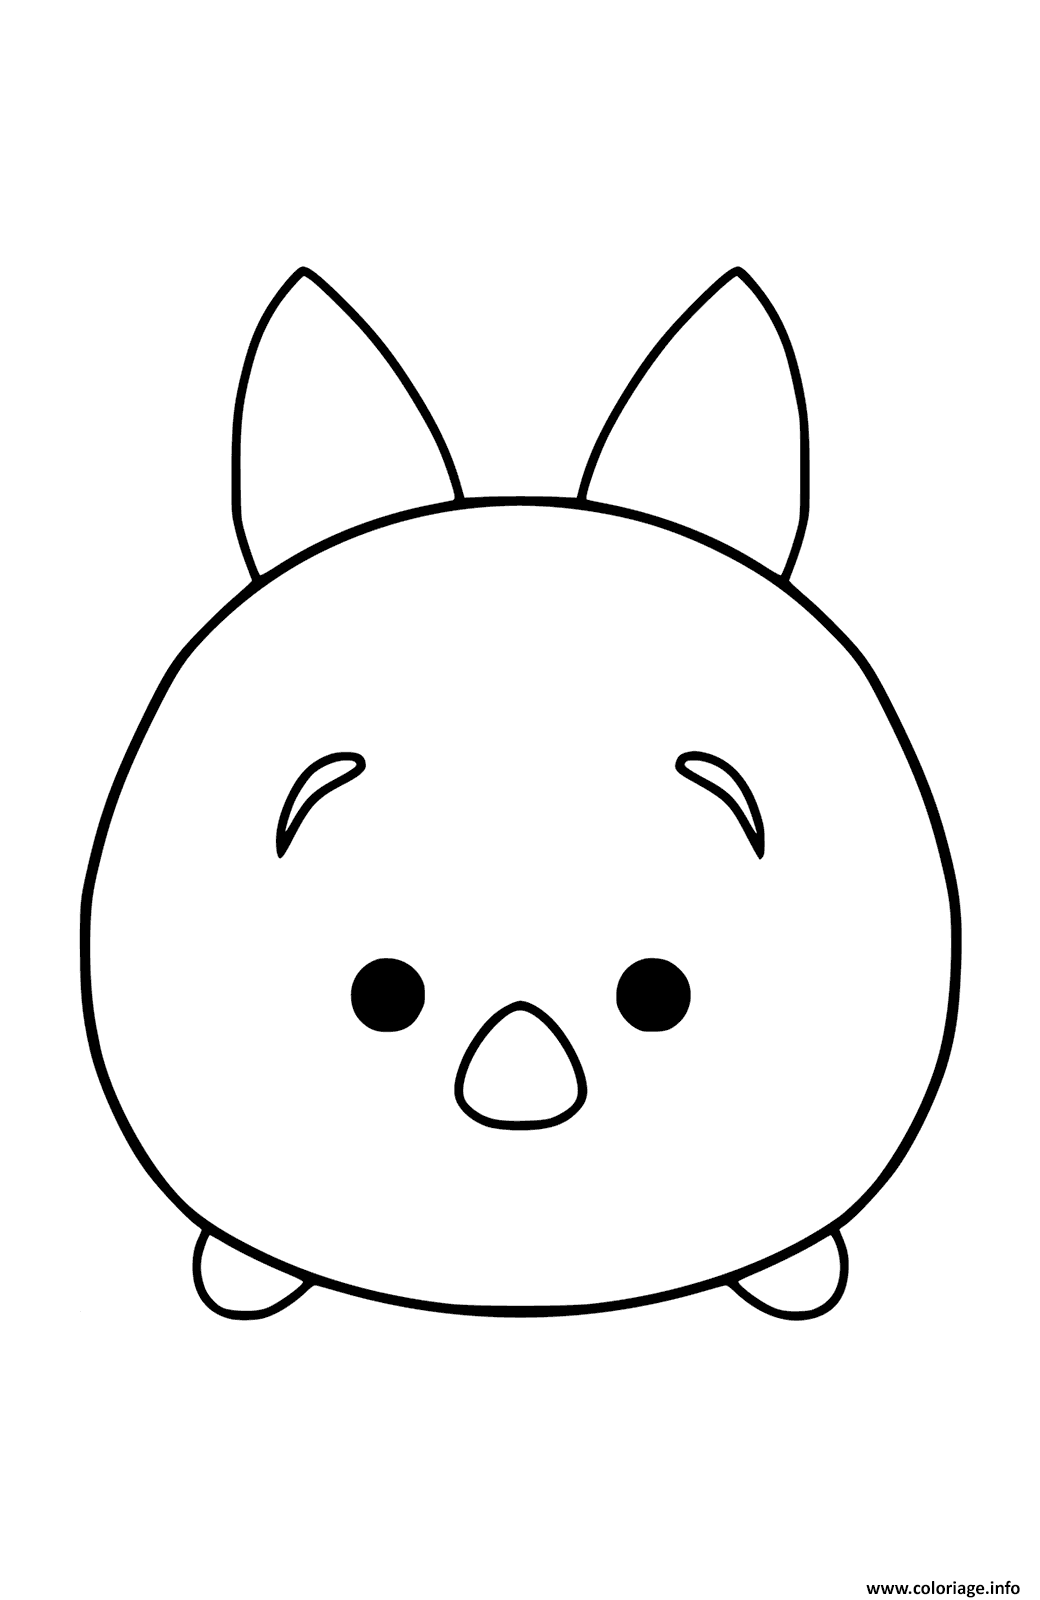 Coloriage Disney Tsum Tsum Plush Toy Piglet To Color Dessin